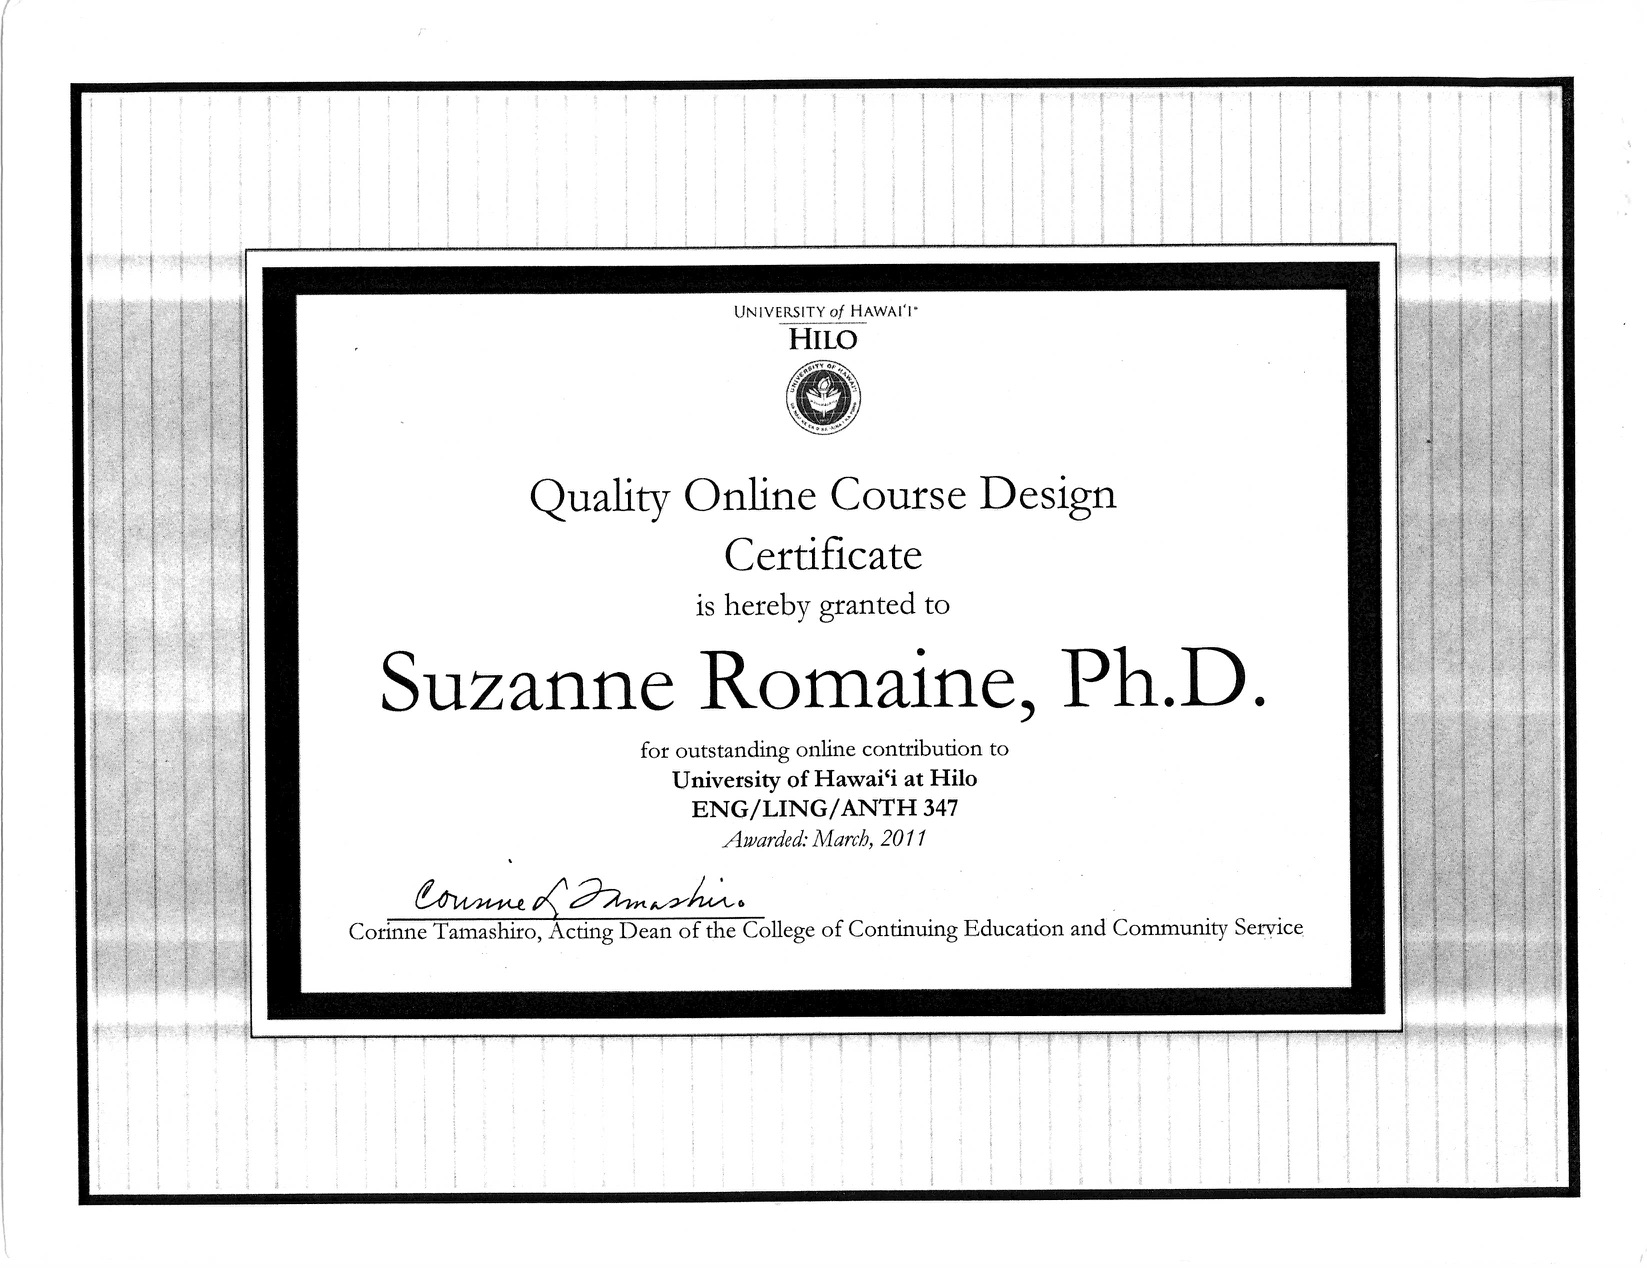 Quality Online Course Design Certificate, awarded to Suzanne Romaine